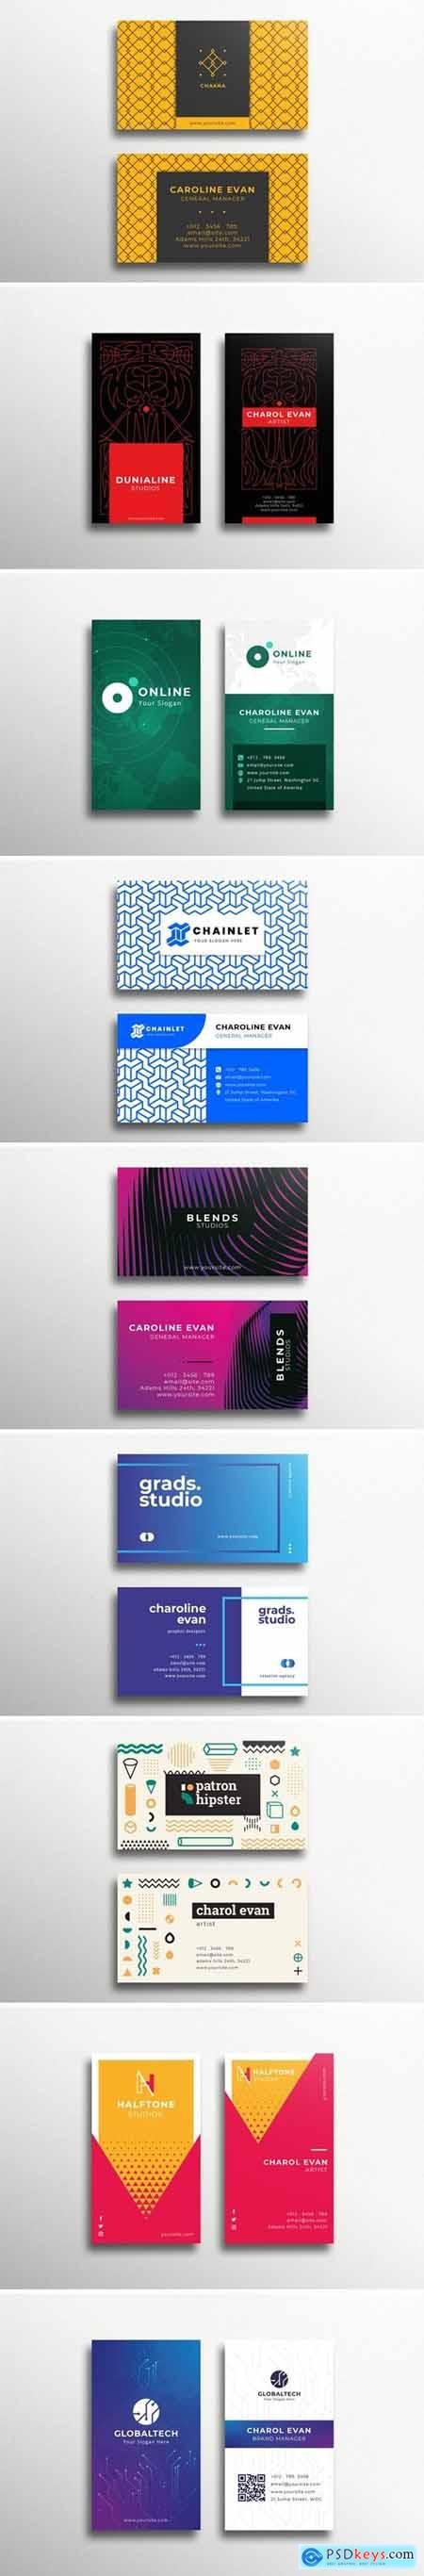 Business Card655